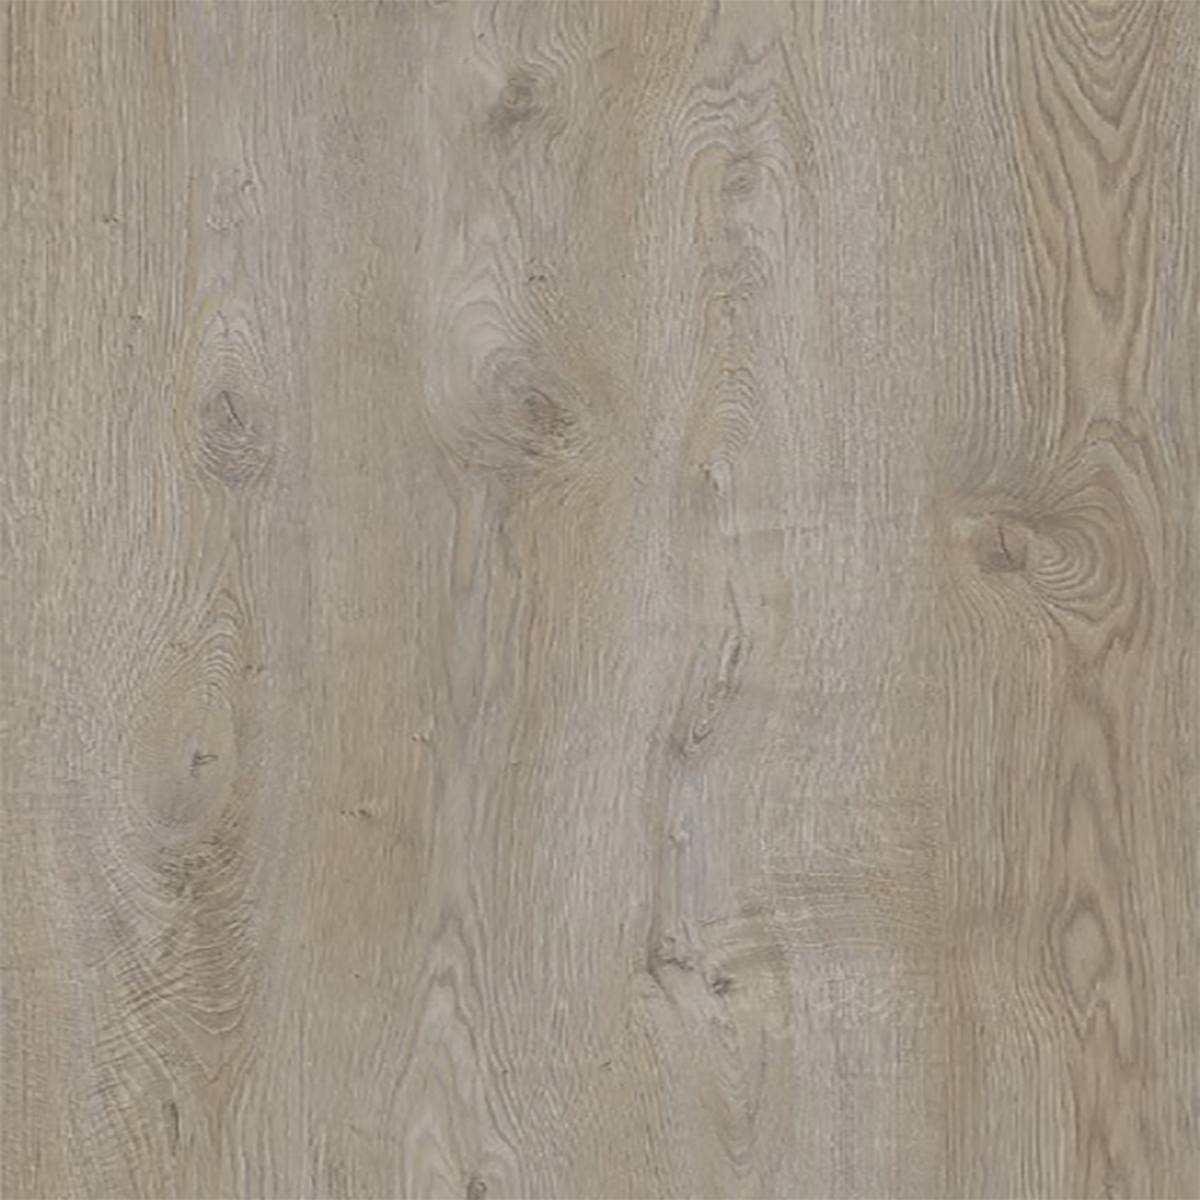 Silver Oak M8015 10mm Laminate Floors - Chalet Collection Image